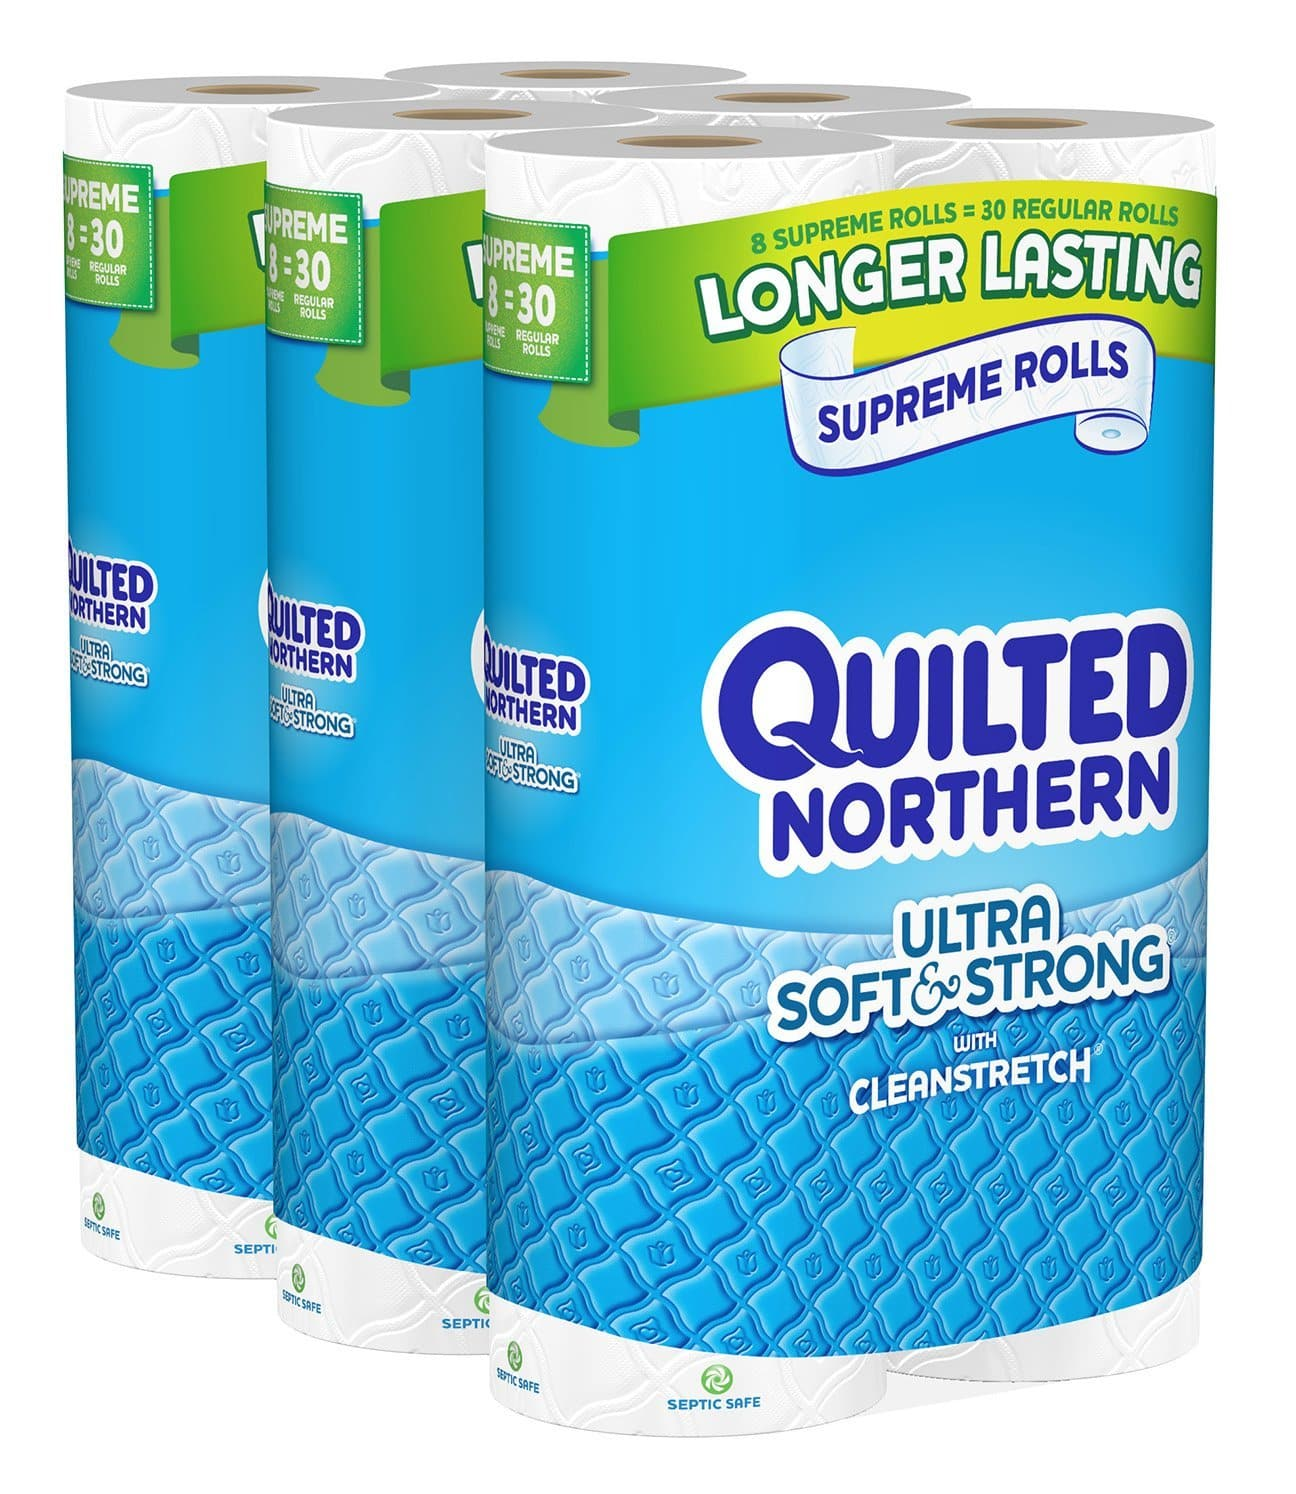 24-Count Supreme Rolls (= 93 Regular Roll) Quilted Northern Ultra Soft and Strong Bath Tissue $18.08 or Less + Free Shipping Amazon.com